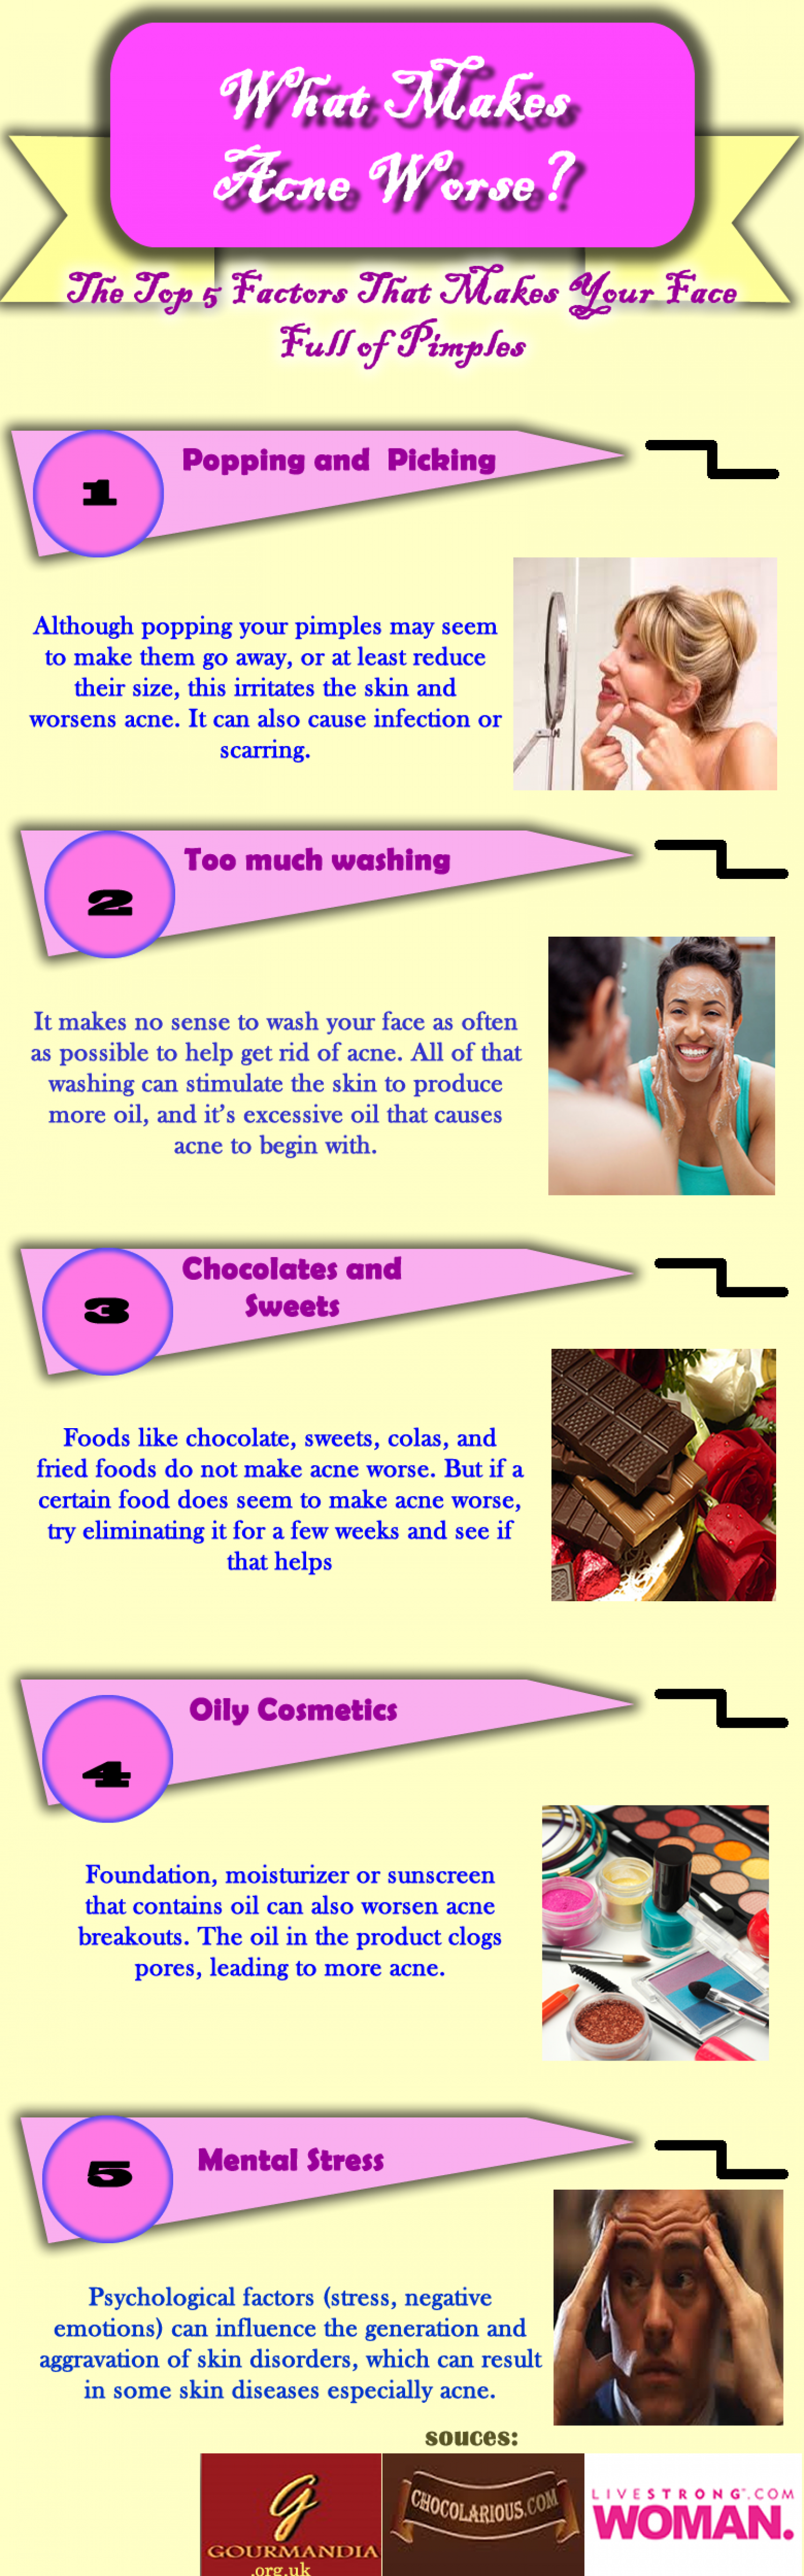 What Makes Acne Worse? Infographic